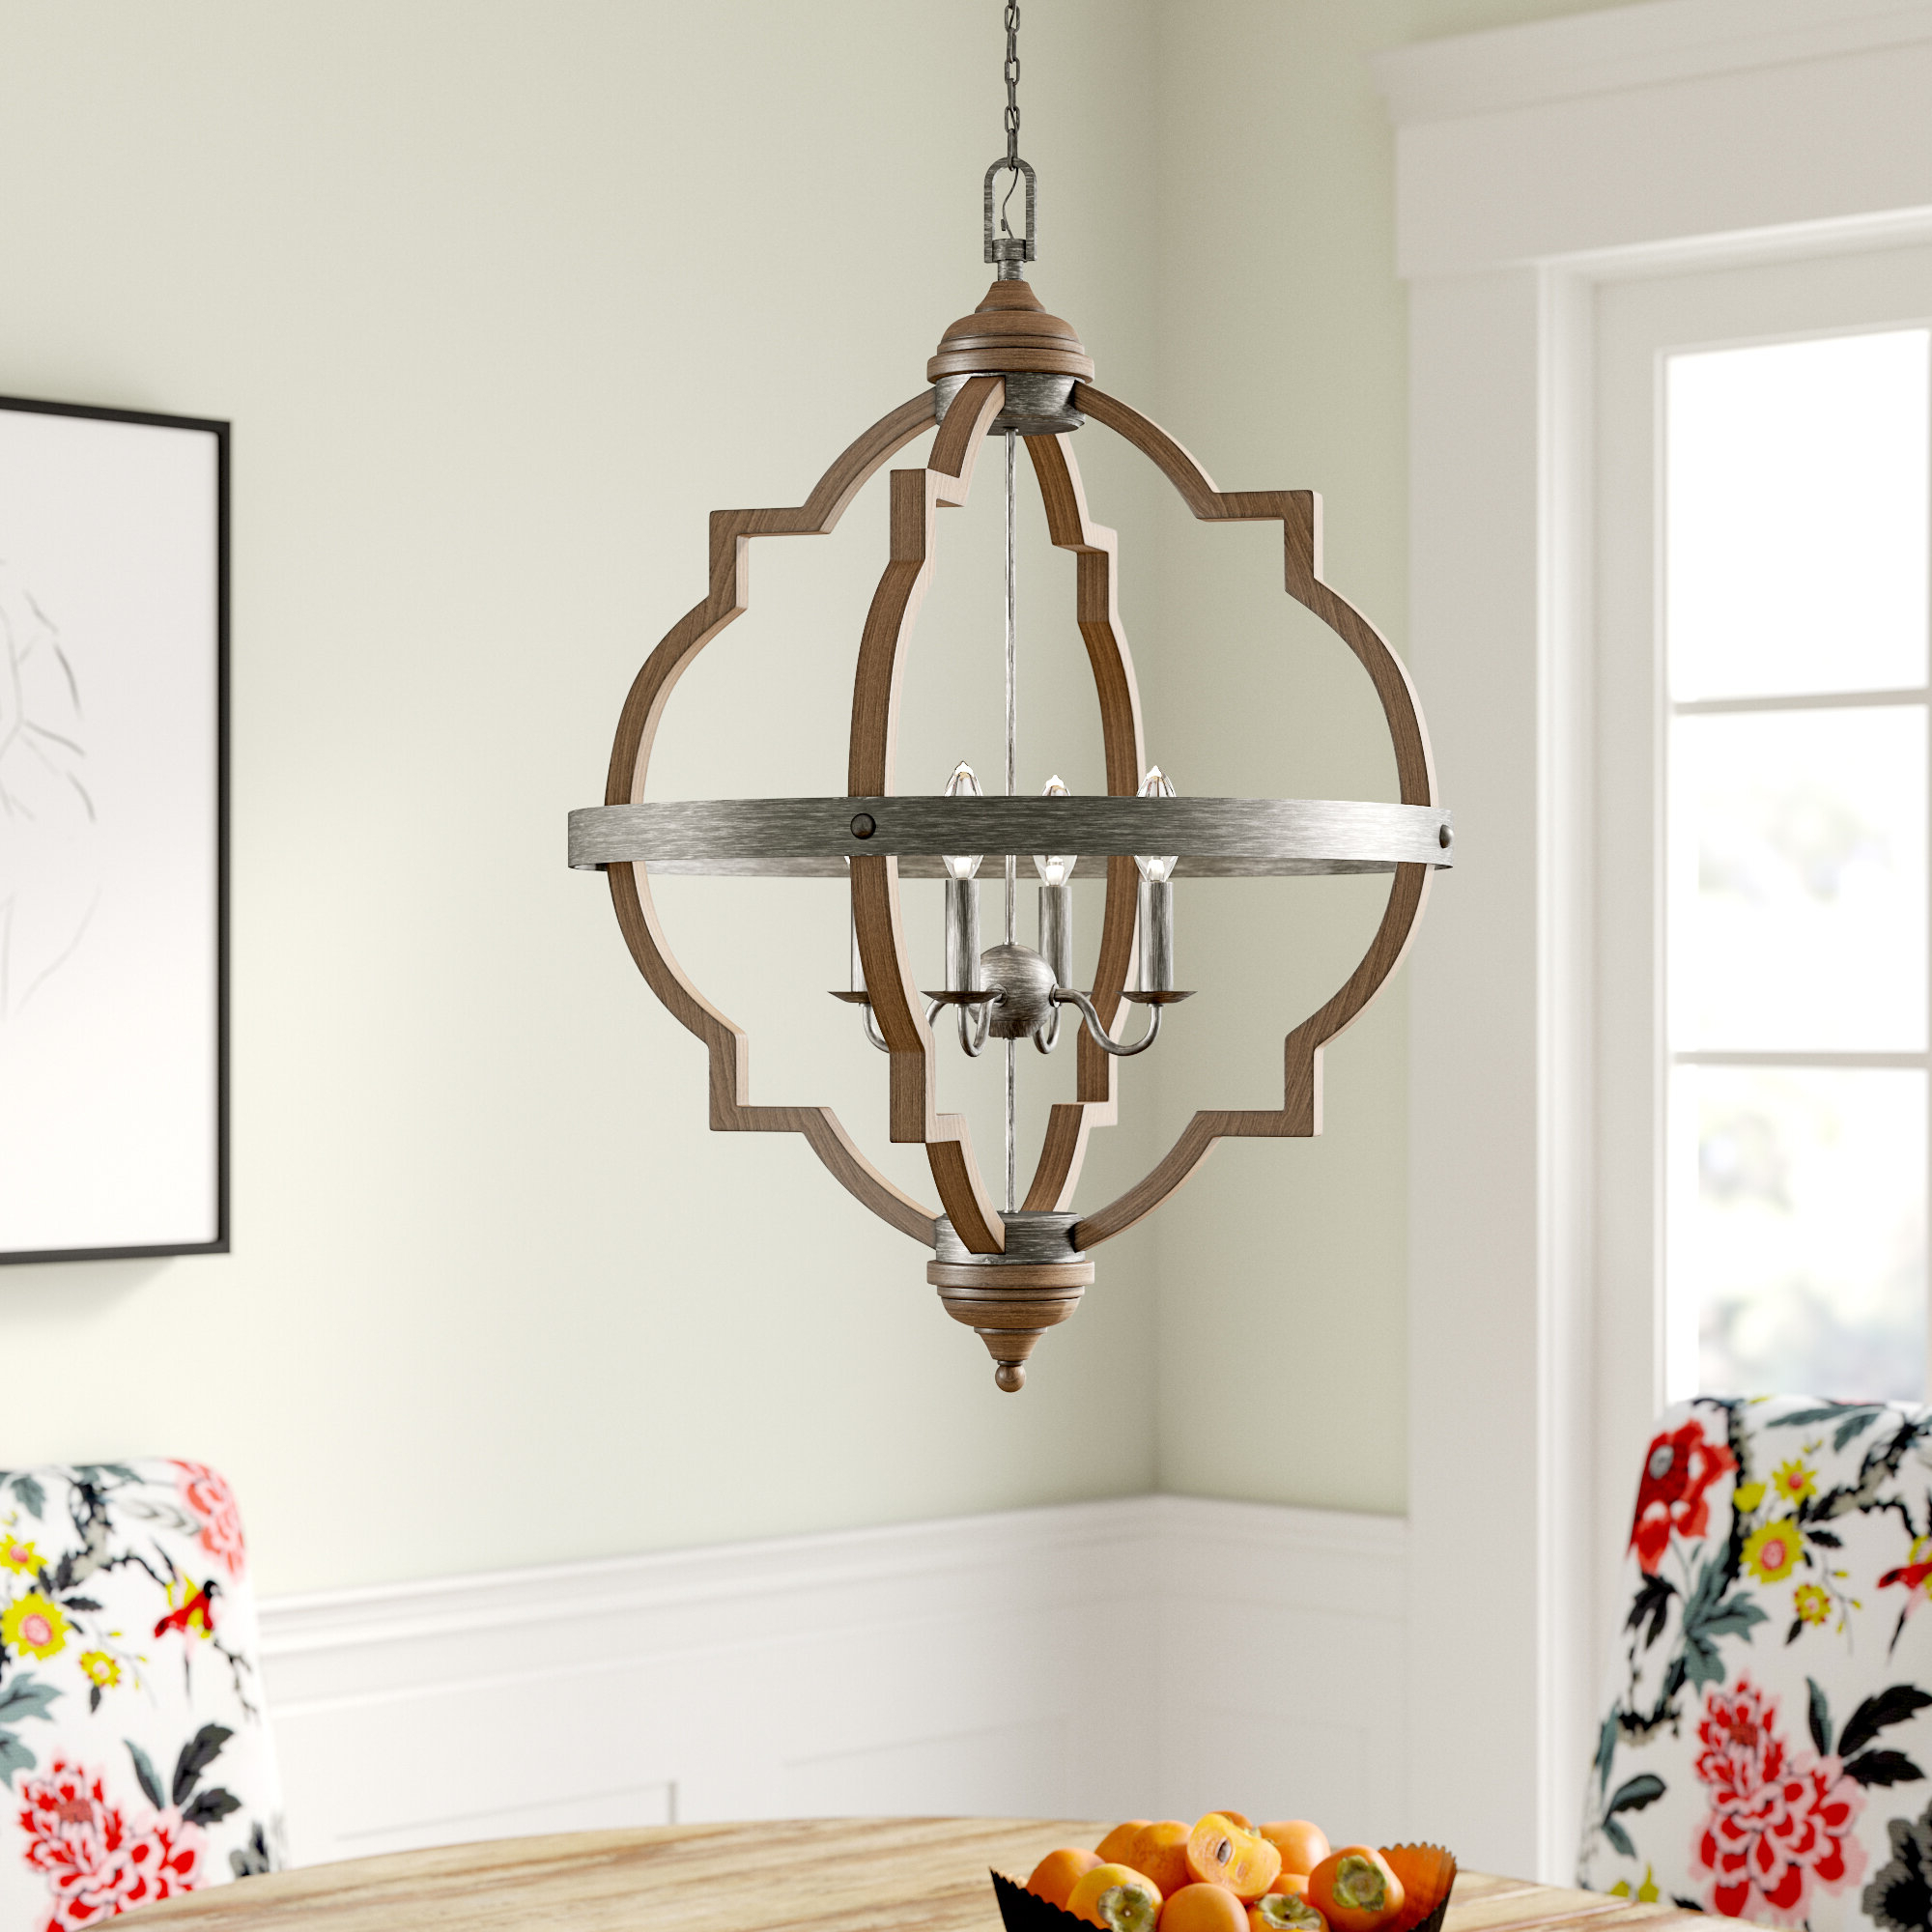 2019 Annuziata 3 Light Unique/statement Chandeliers Throughout Bennington 4 Light Candle Style Chandelier (View 1 of 25)